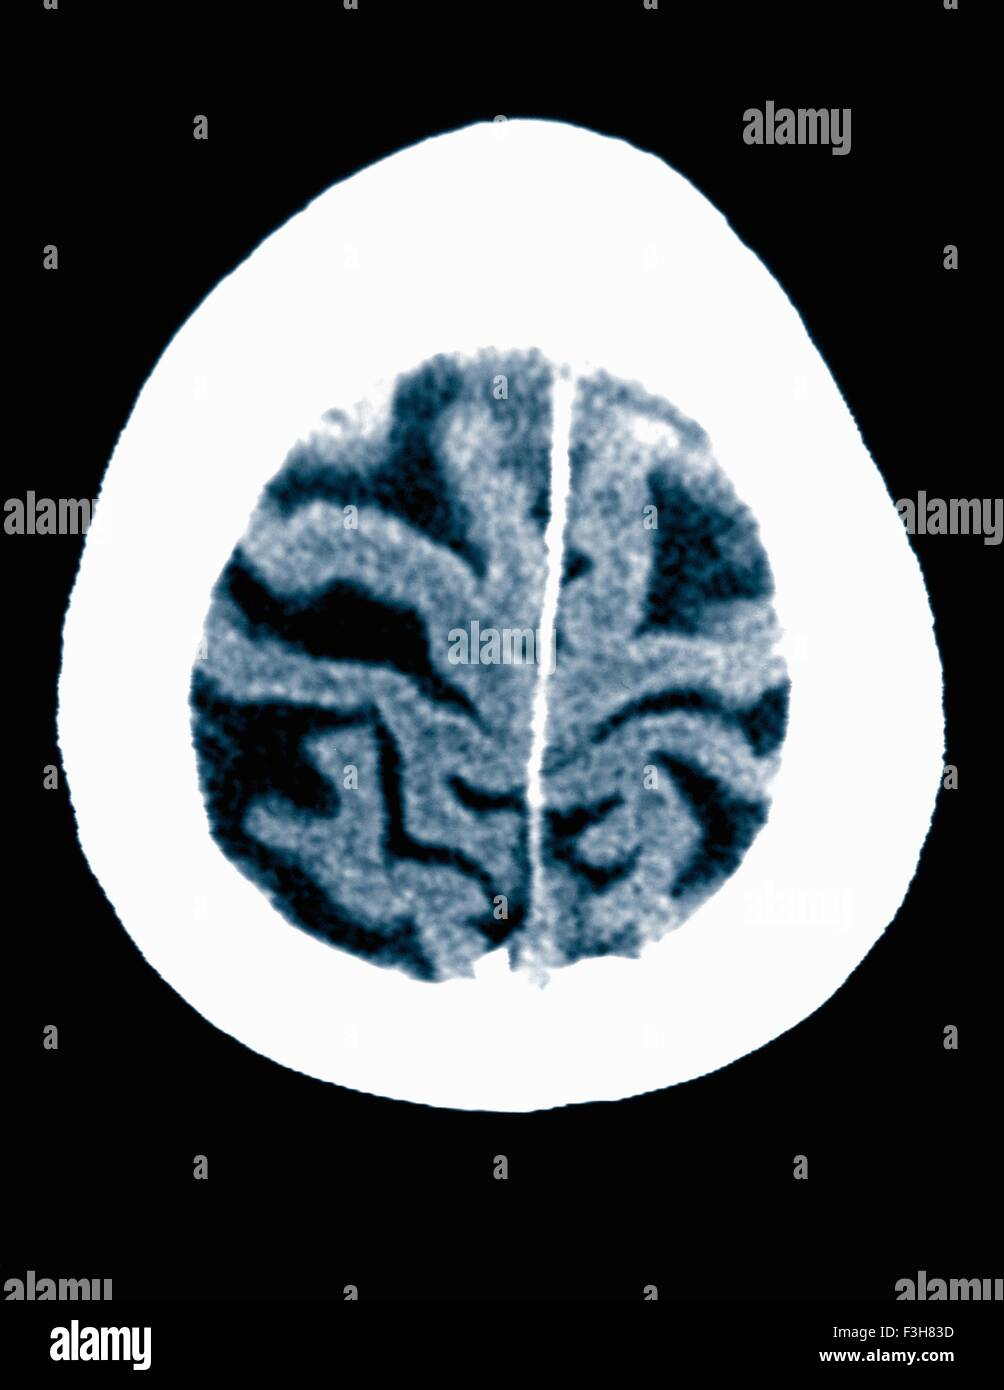 CT scan 84 year old male with Alzheimer's disease.  CT shows brain atrophy with small gyri and large sulci - Stock Image